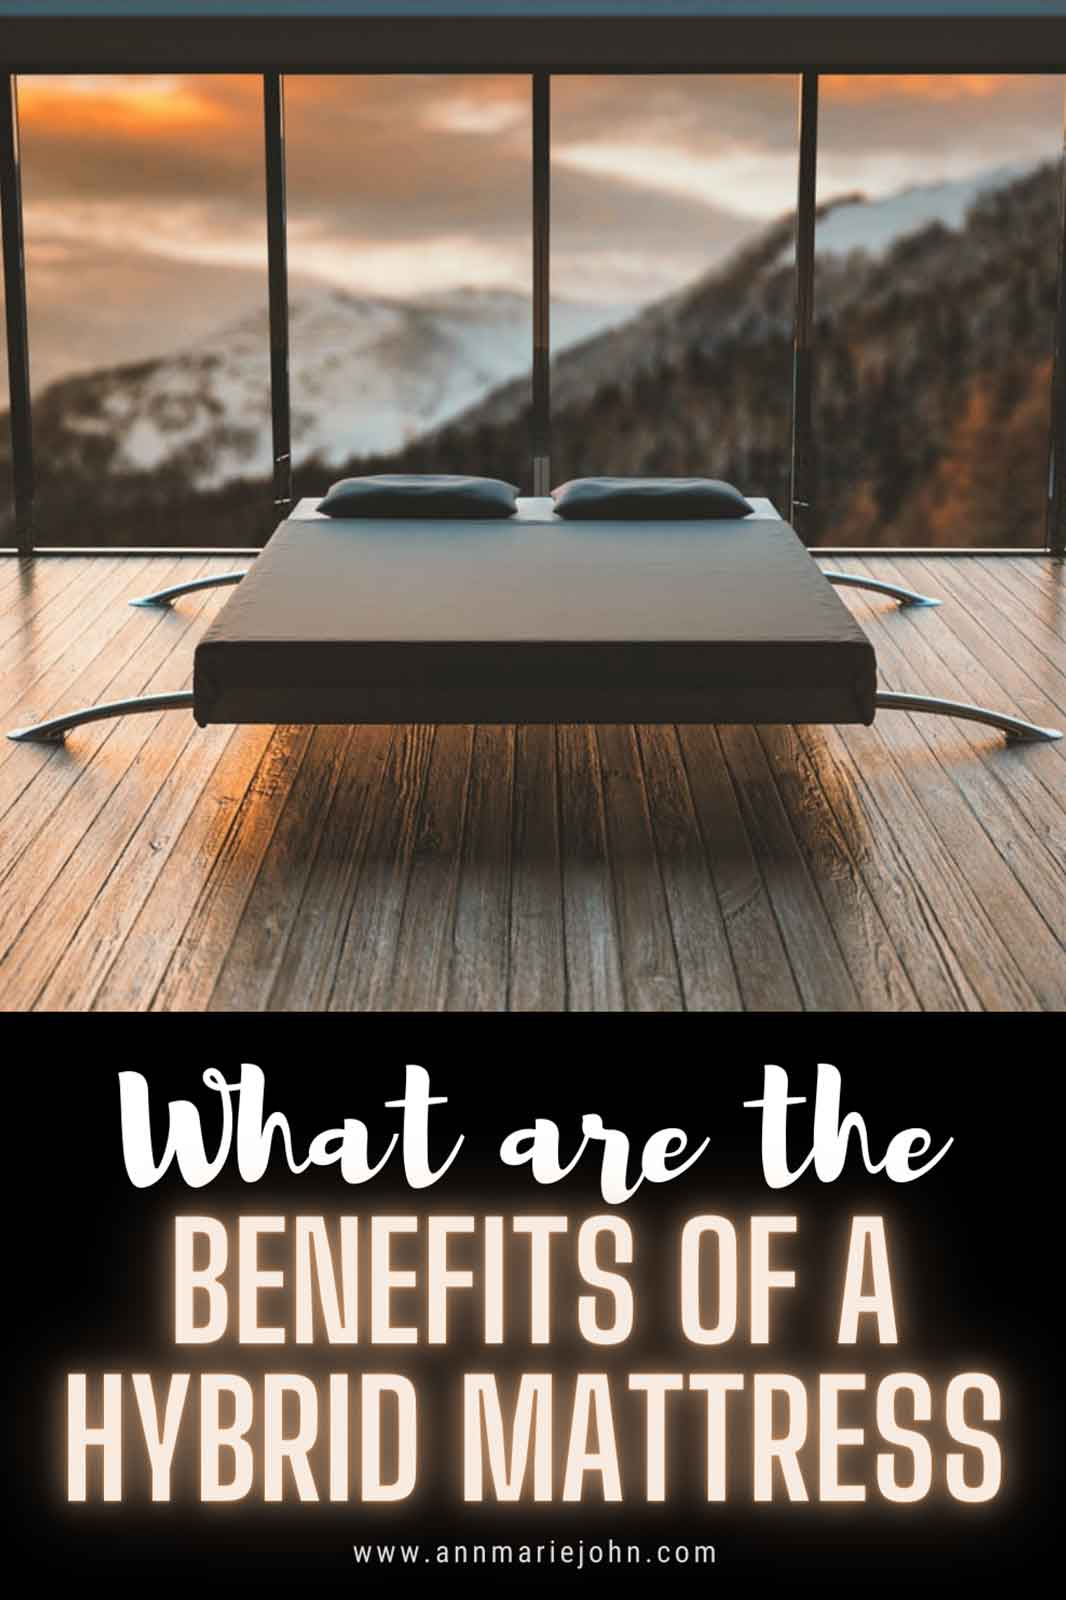 What are the Benefits of a Hybrid Mattress